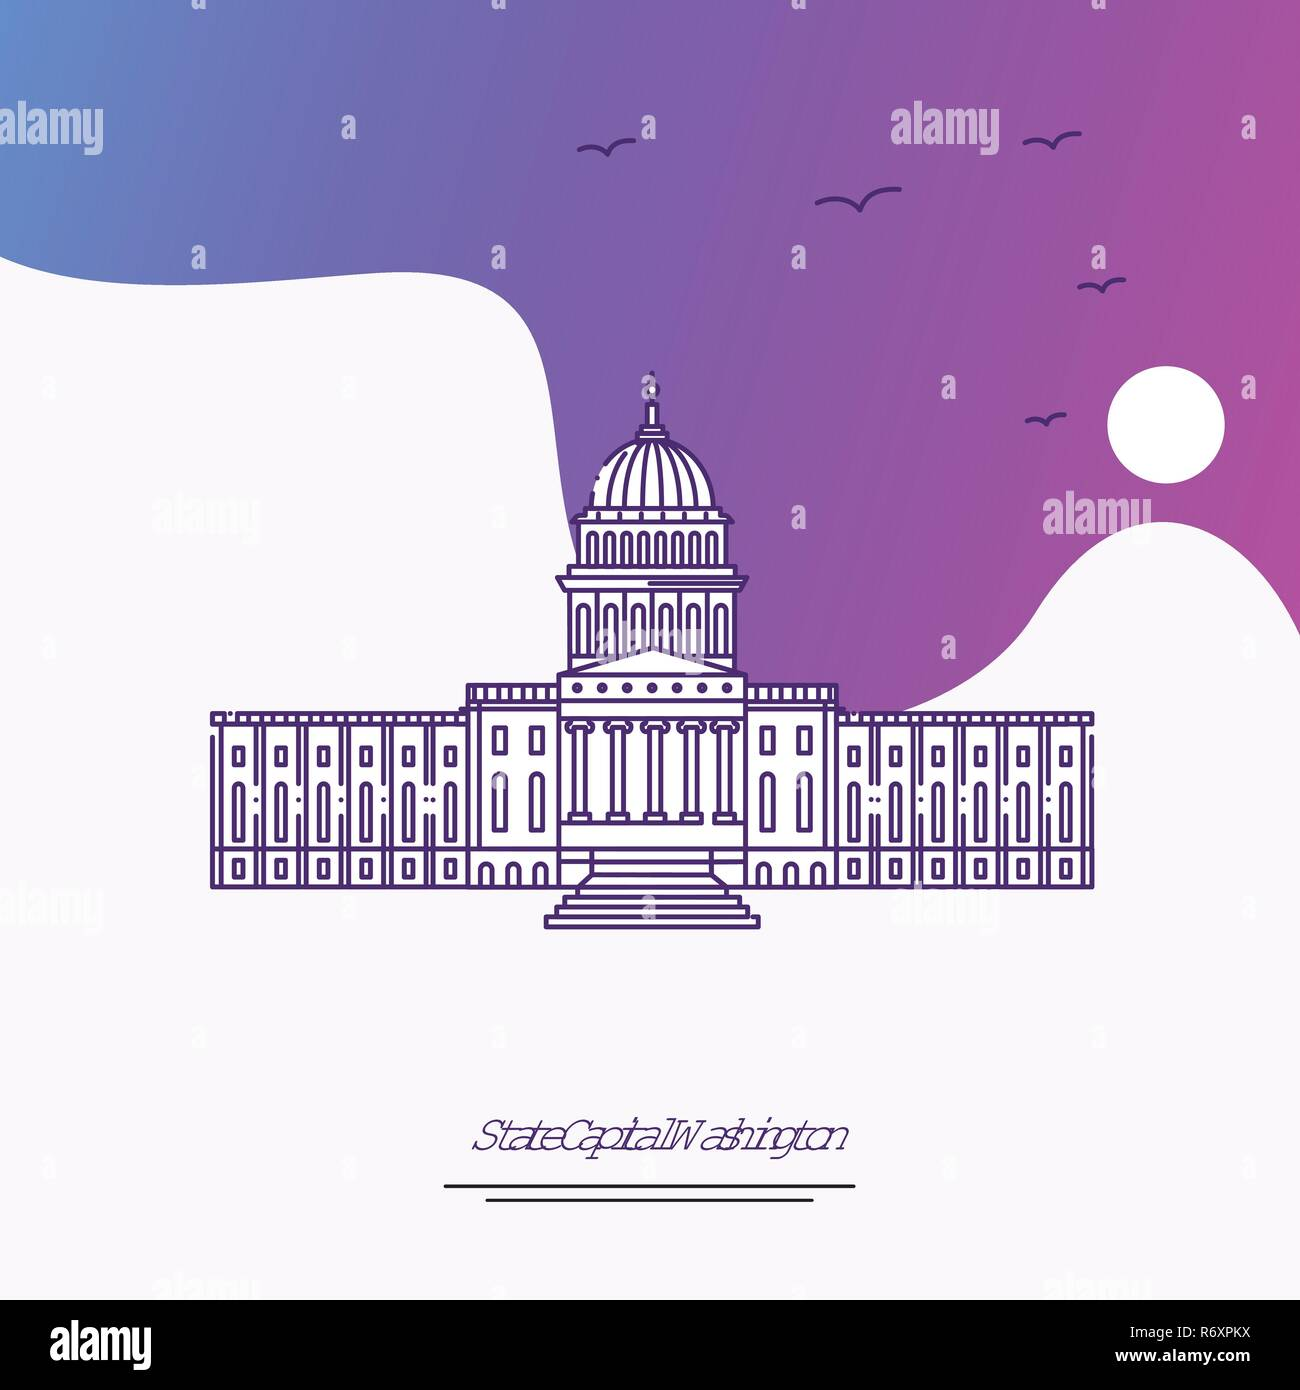 Travel STATE CAPITAL WASHINGTON Poster Template. Purple creative background - Stock Vector